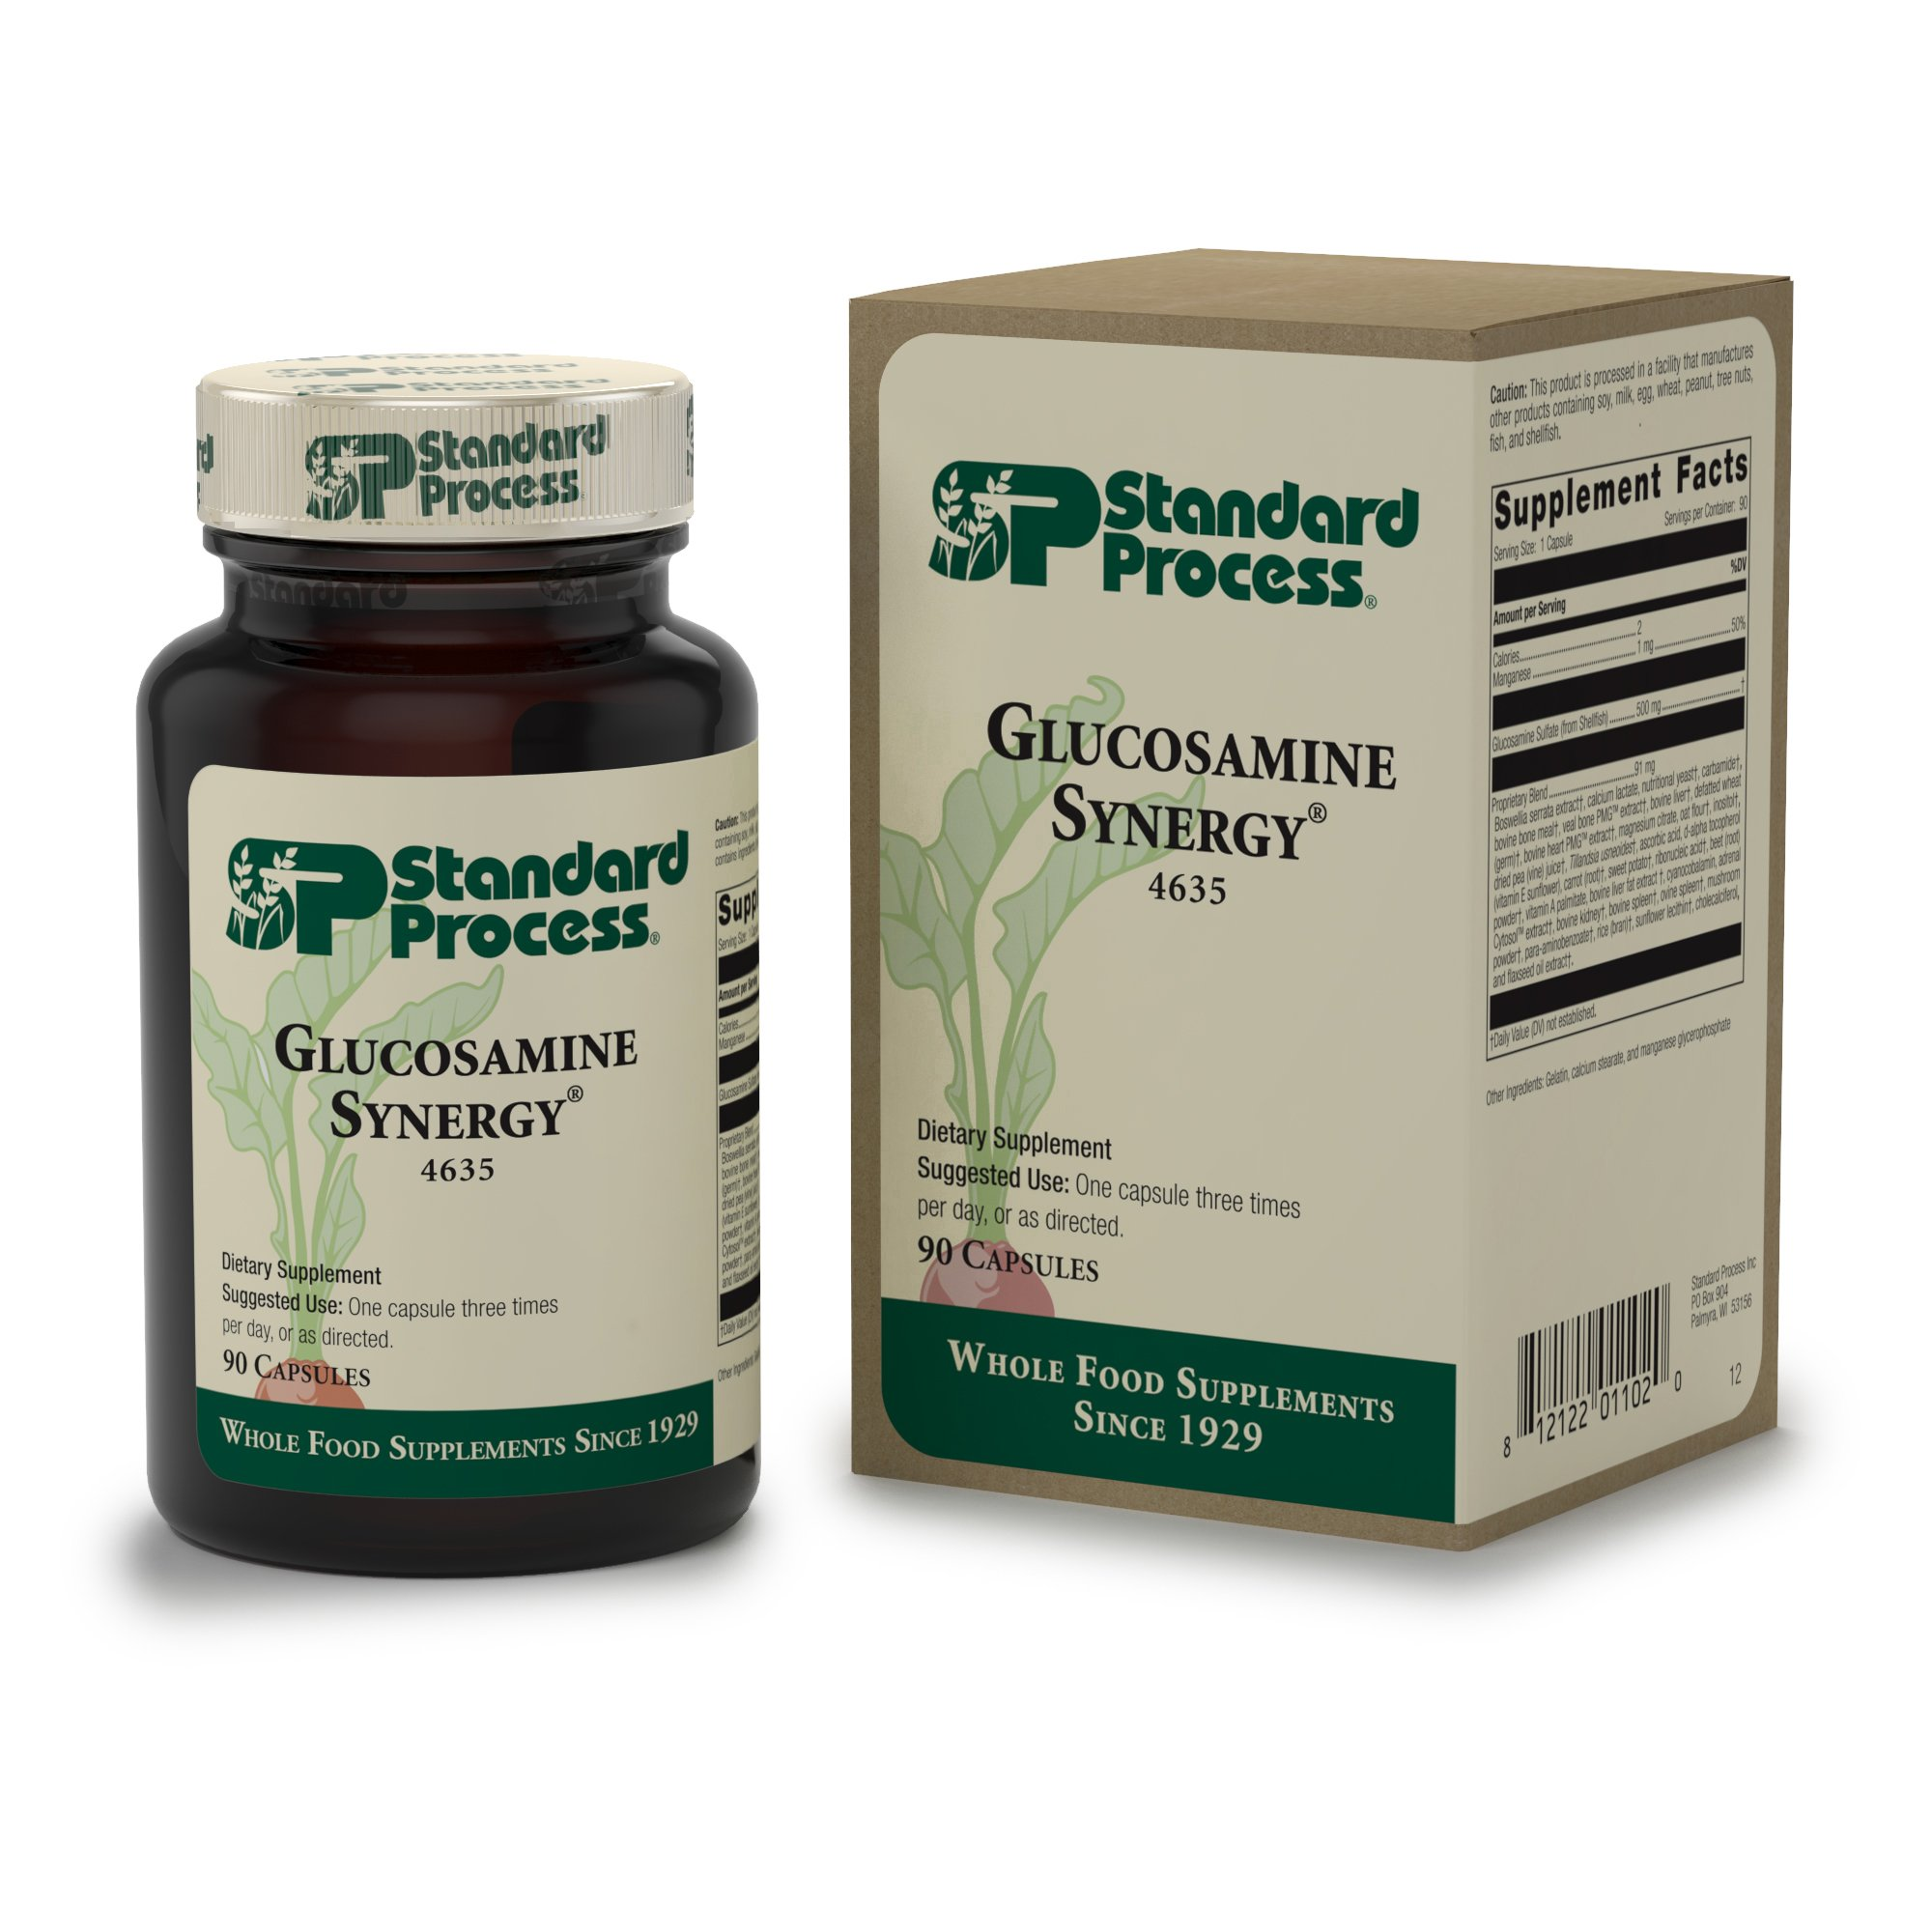 Standard Process - Glucosamine Synergy - Glucosamine, Boswellia Serrata, and Manganese Supplement, Supports Joint Health and Connective Tissue Function and Repair - 90 Capsules